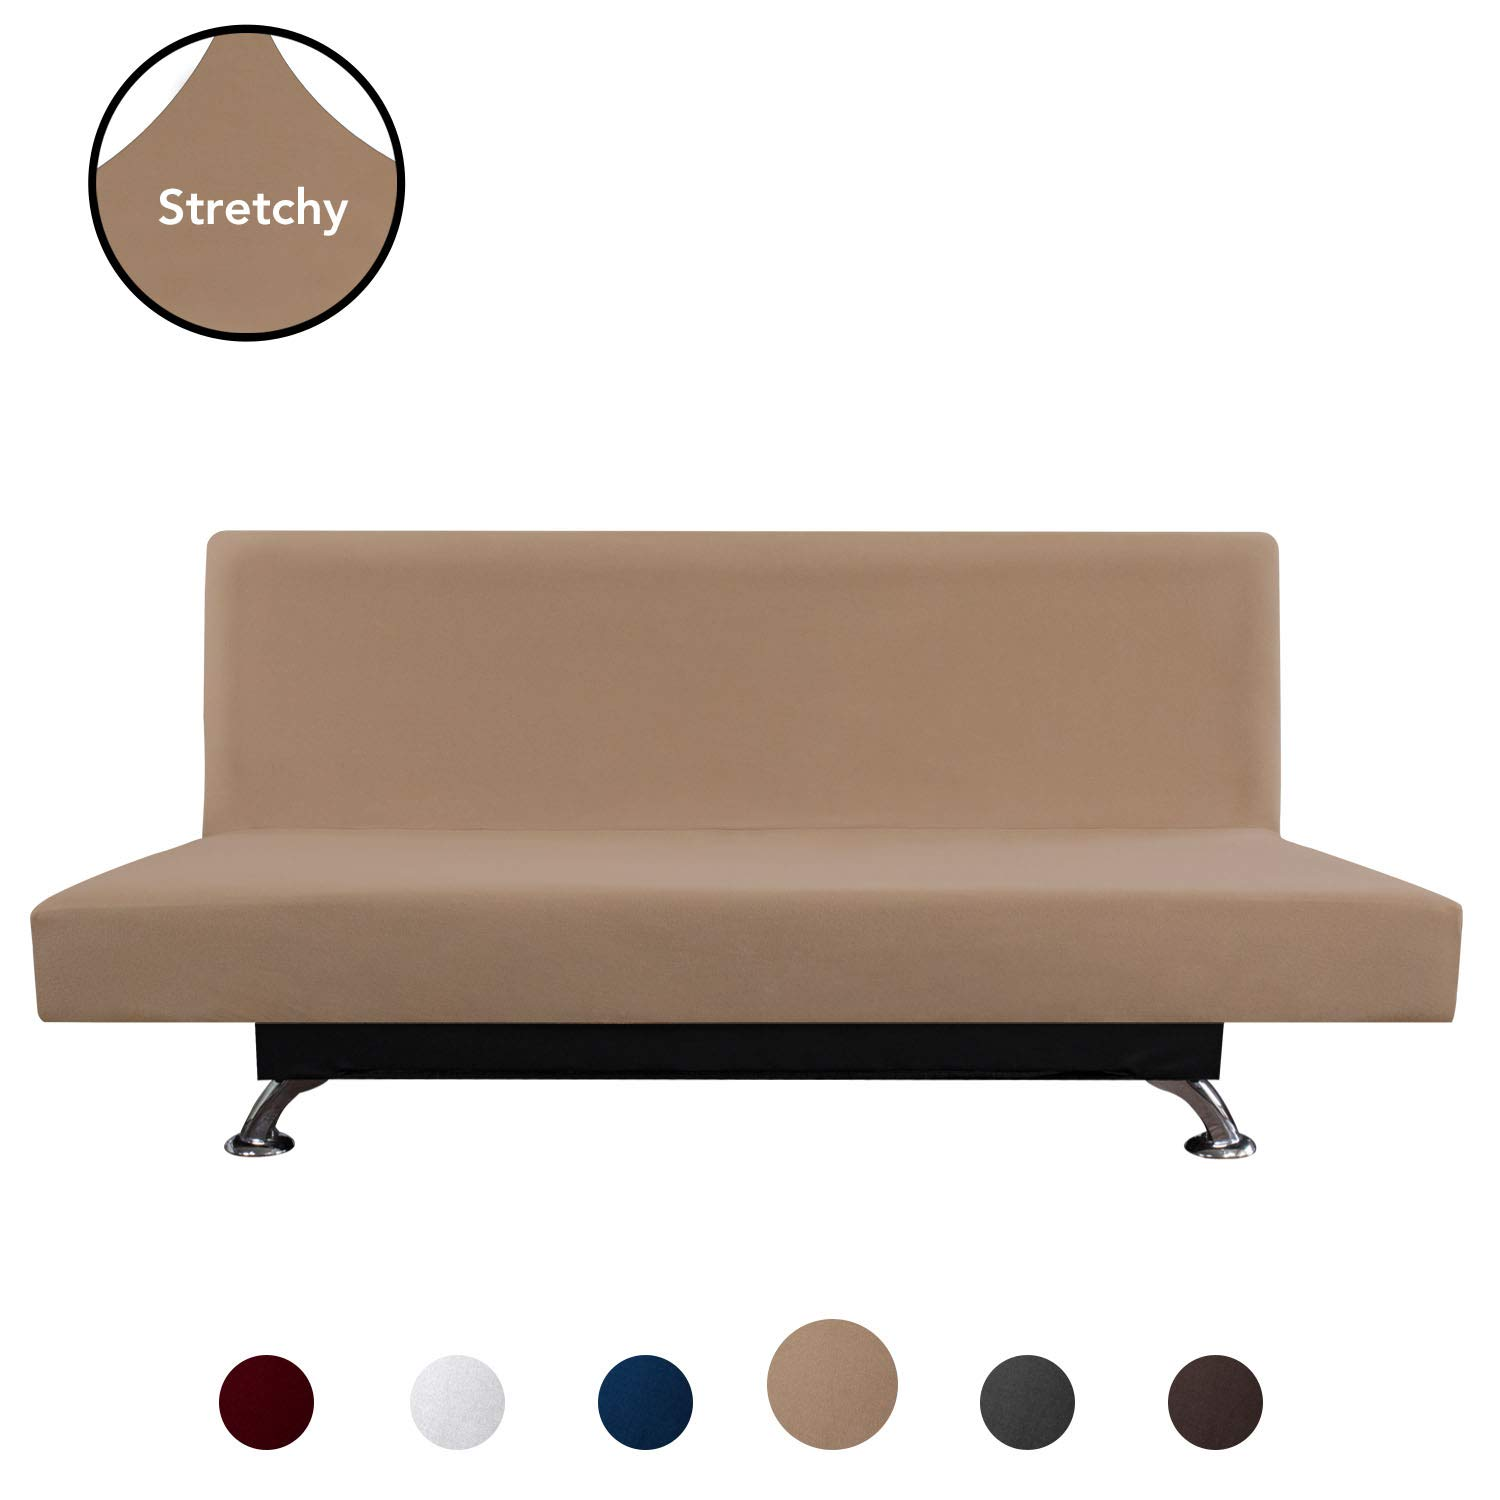 Stupendous Purefit Super Stretch Armless Chair Sofa Slipcover Spandex Anti Slip Soft Couch Sofa Cover Washable Furniture Protector With Elastic Bottom For Spiritservingveterans Wood Chair Design Ideas Spiritservingveteransorg